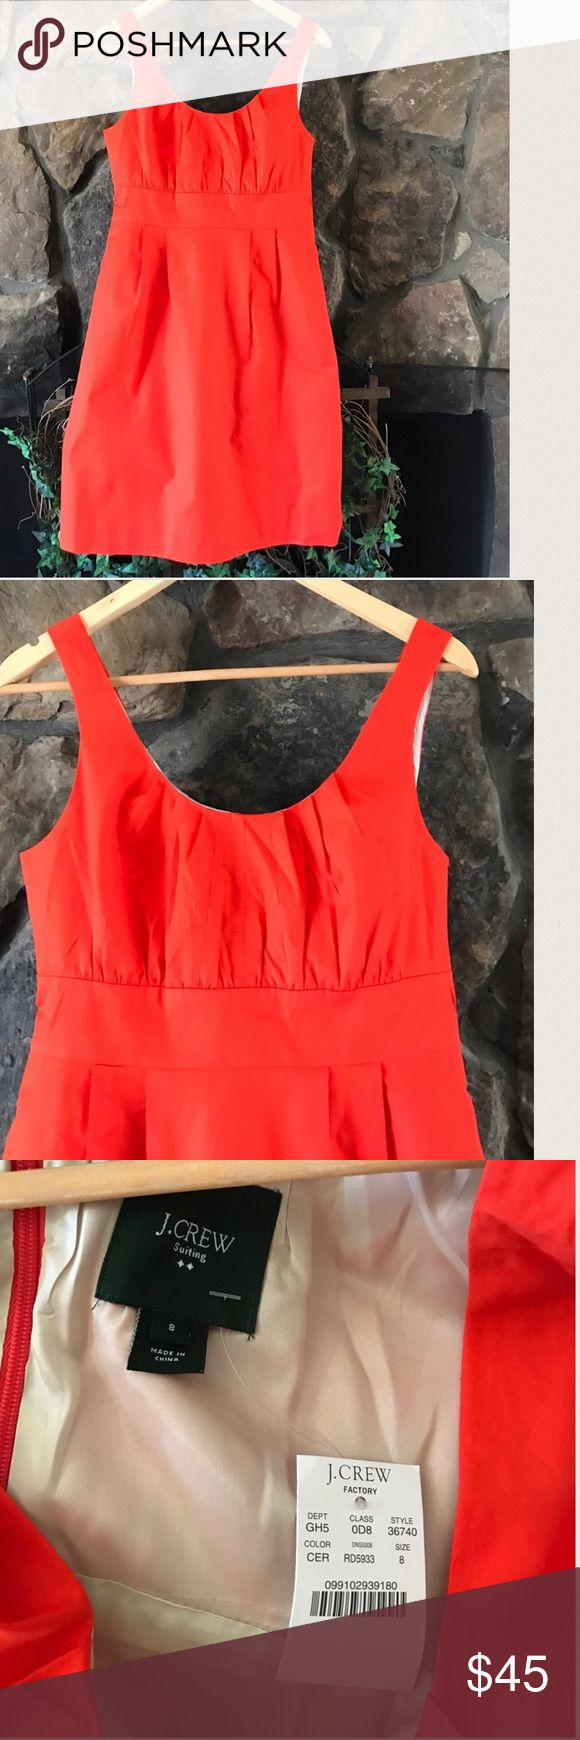 """🐞NWT J CREW SUITING ORANGE DRESS🐞 New with tag J crew suiting dress in reddish orange. Back zipping gathered bodice for shape definition with a band at the waist pleating. Fully lined. From J Crew Factory. Bust 18"""", waist 15"""", length 35 1/2"""". 97% cotton 3% spandex.  Lining 100% acetate. J. Crew Dresses Midi"""